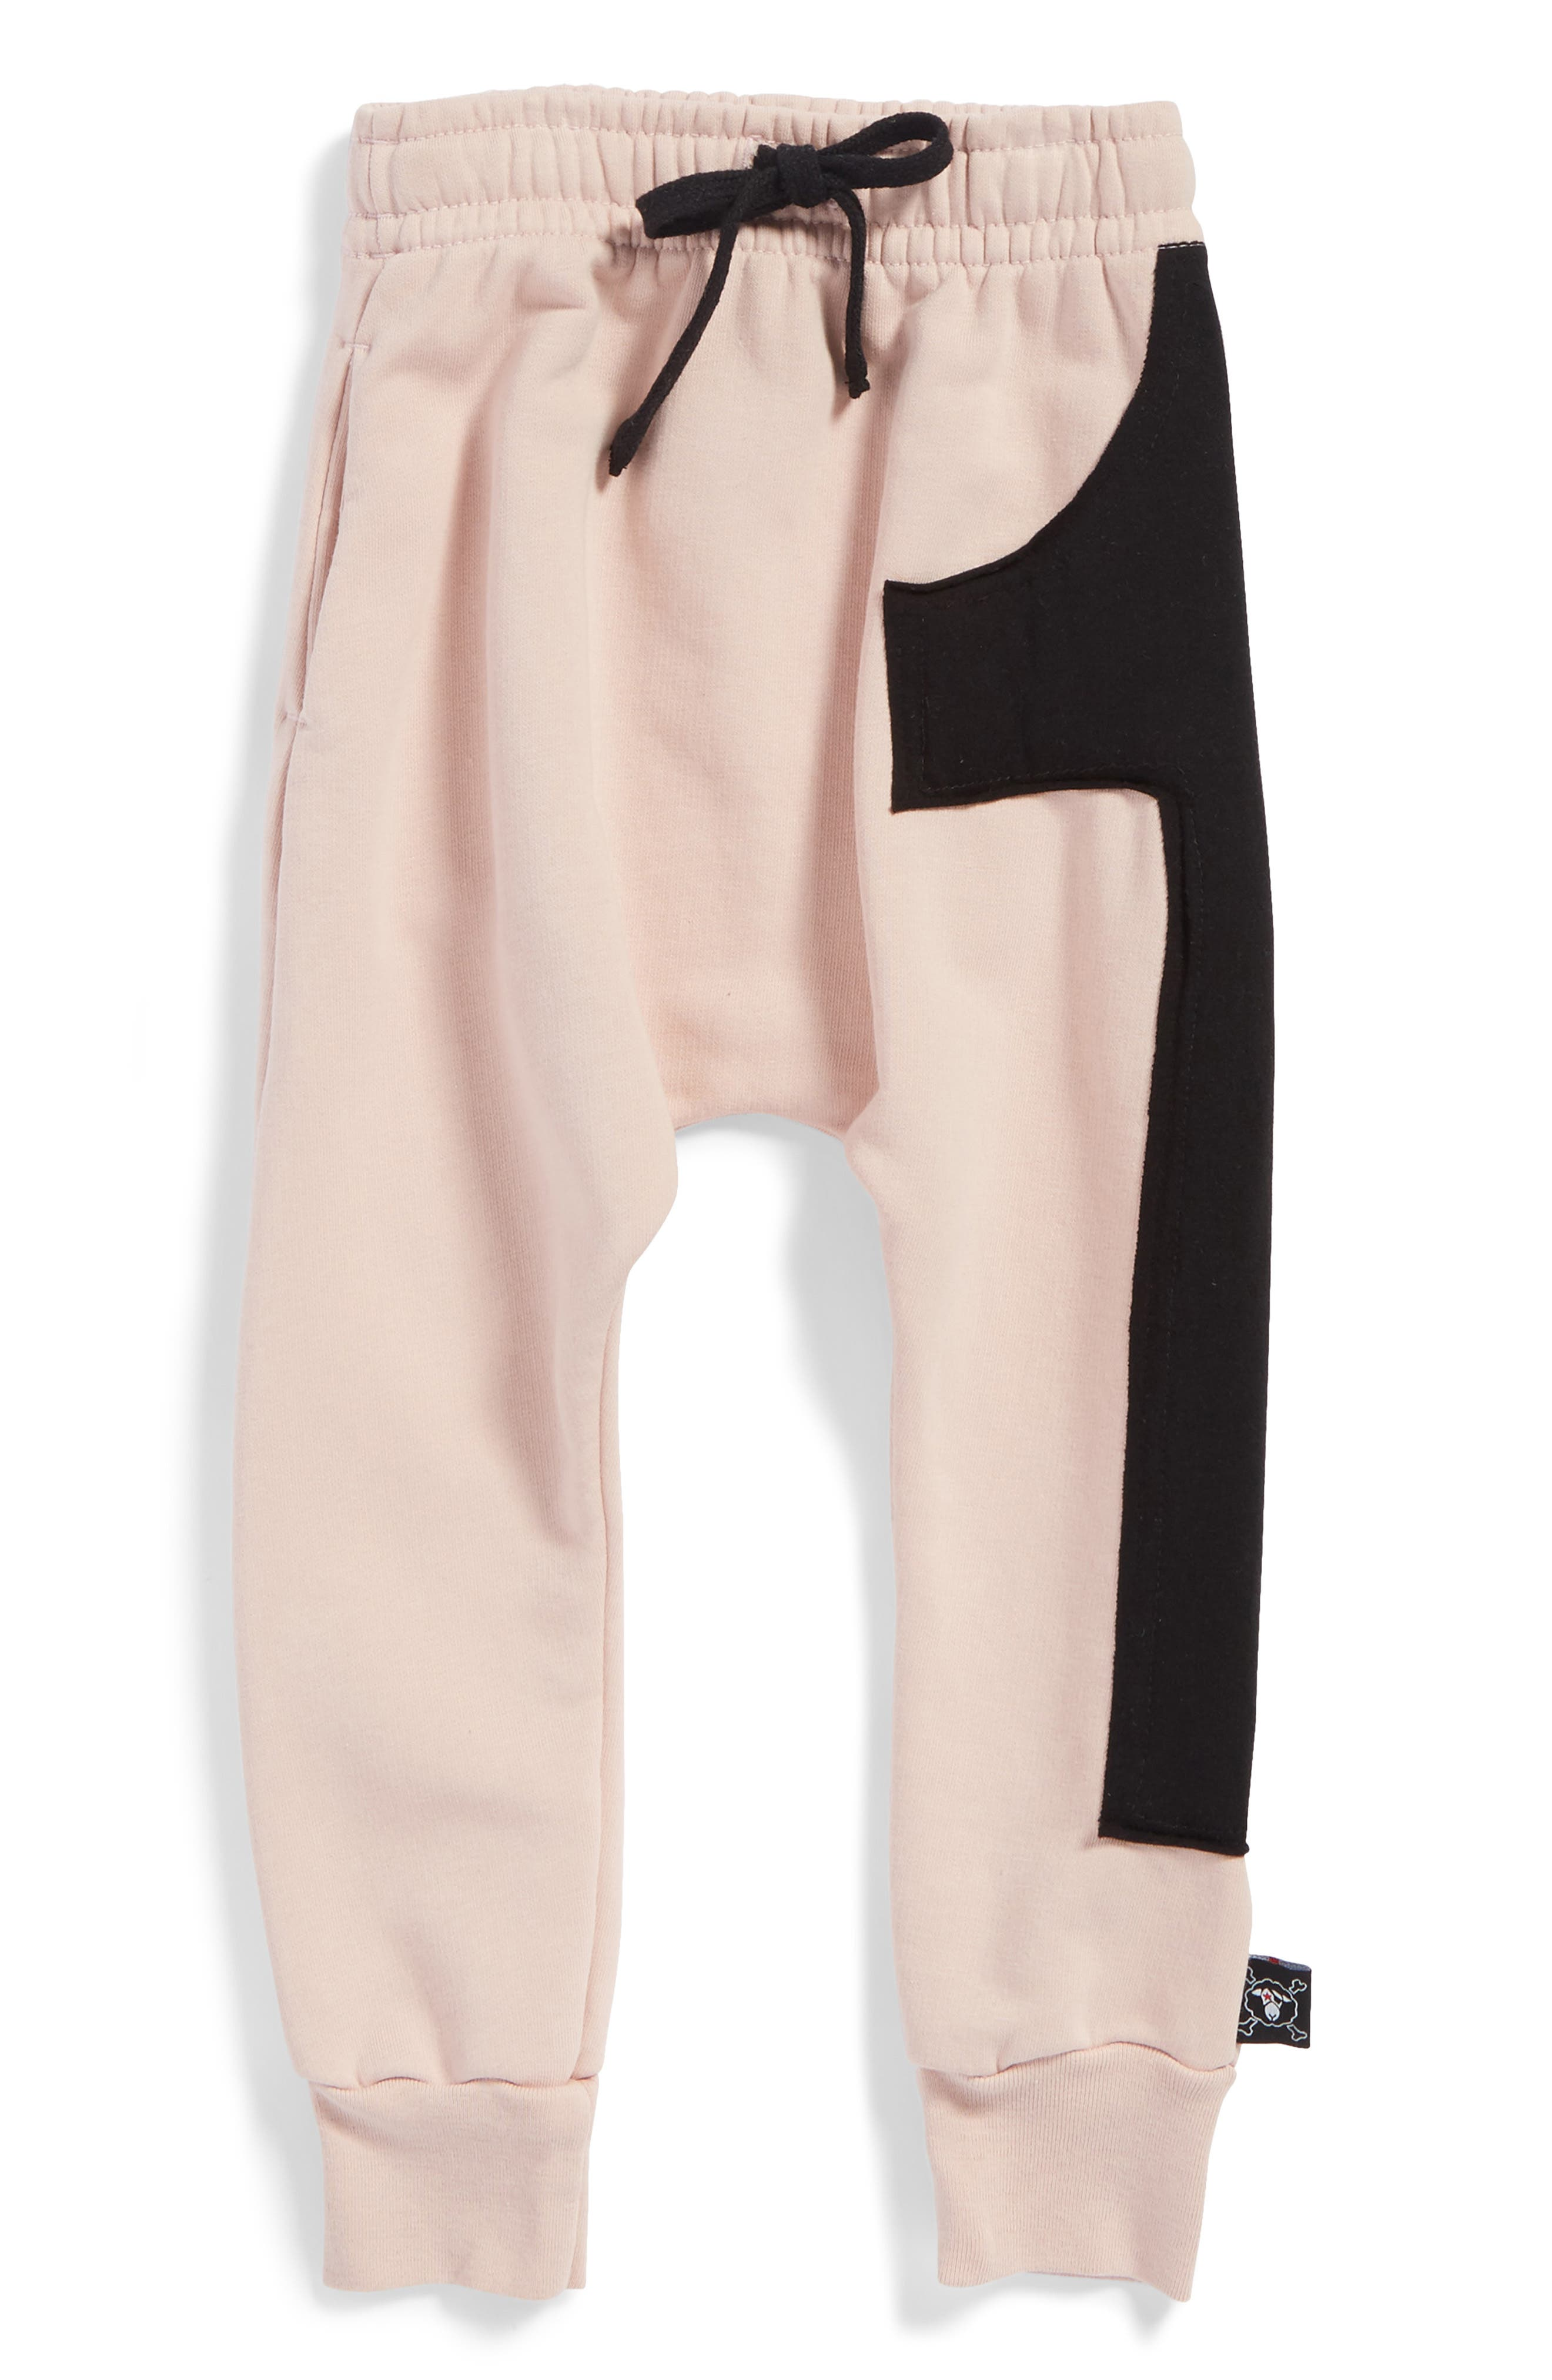 Alternate Image 1 Selected - NUNUNU Puffy Number Baggy Pants (Toddler Girls & Little Girls)